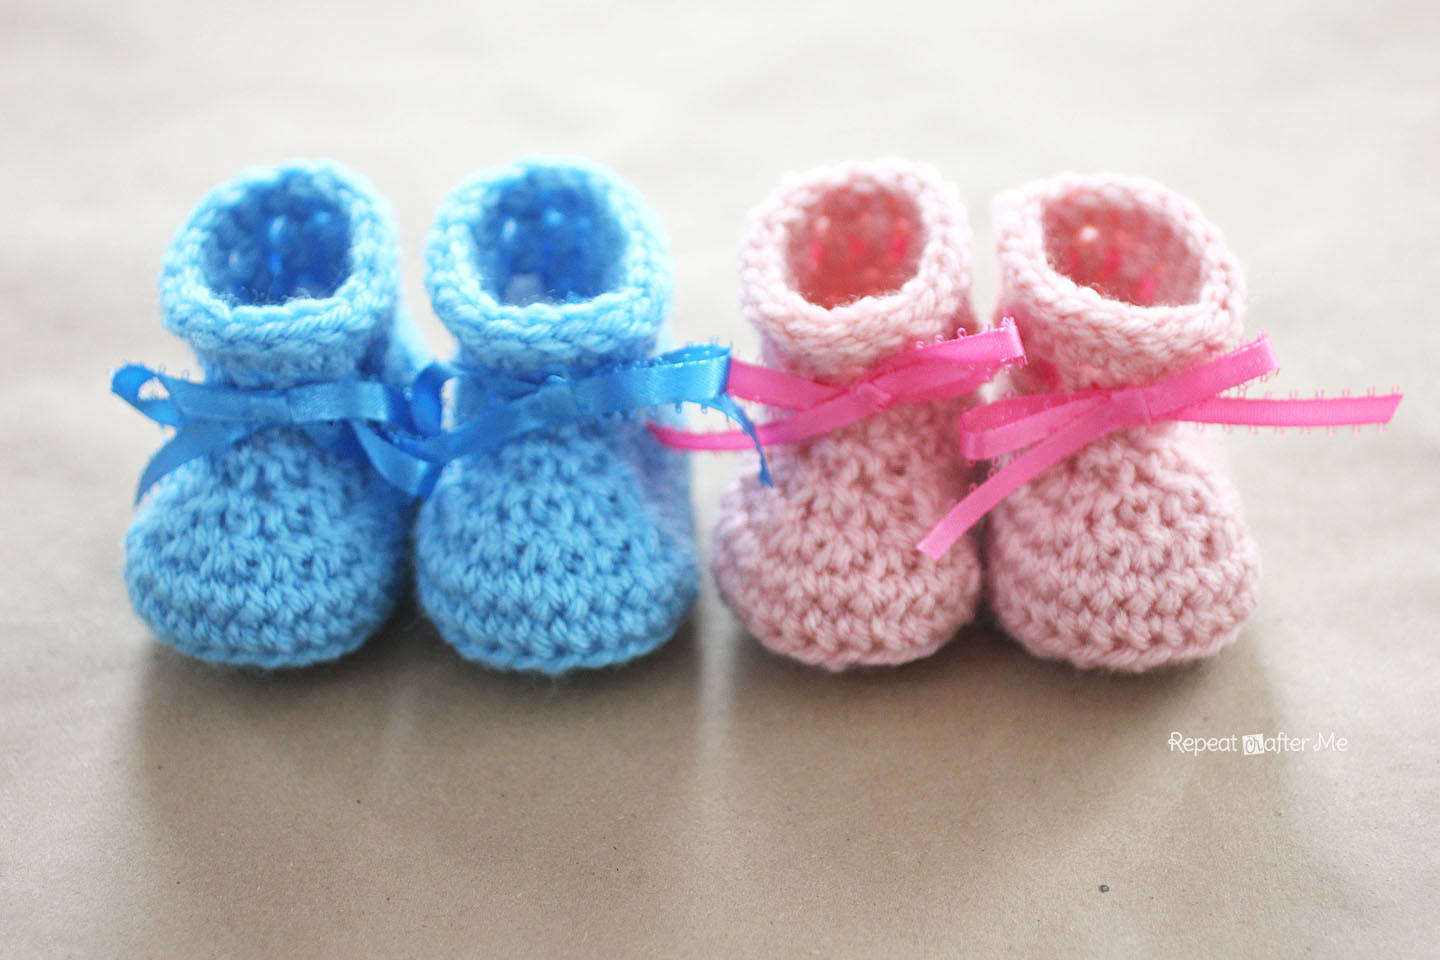 Luxury Crochet Newborn Baby Booties Pattern Repeat Crafter Me Crochet Baby socks Of Marvelous 50 Images Crochet Baby socks